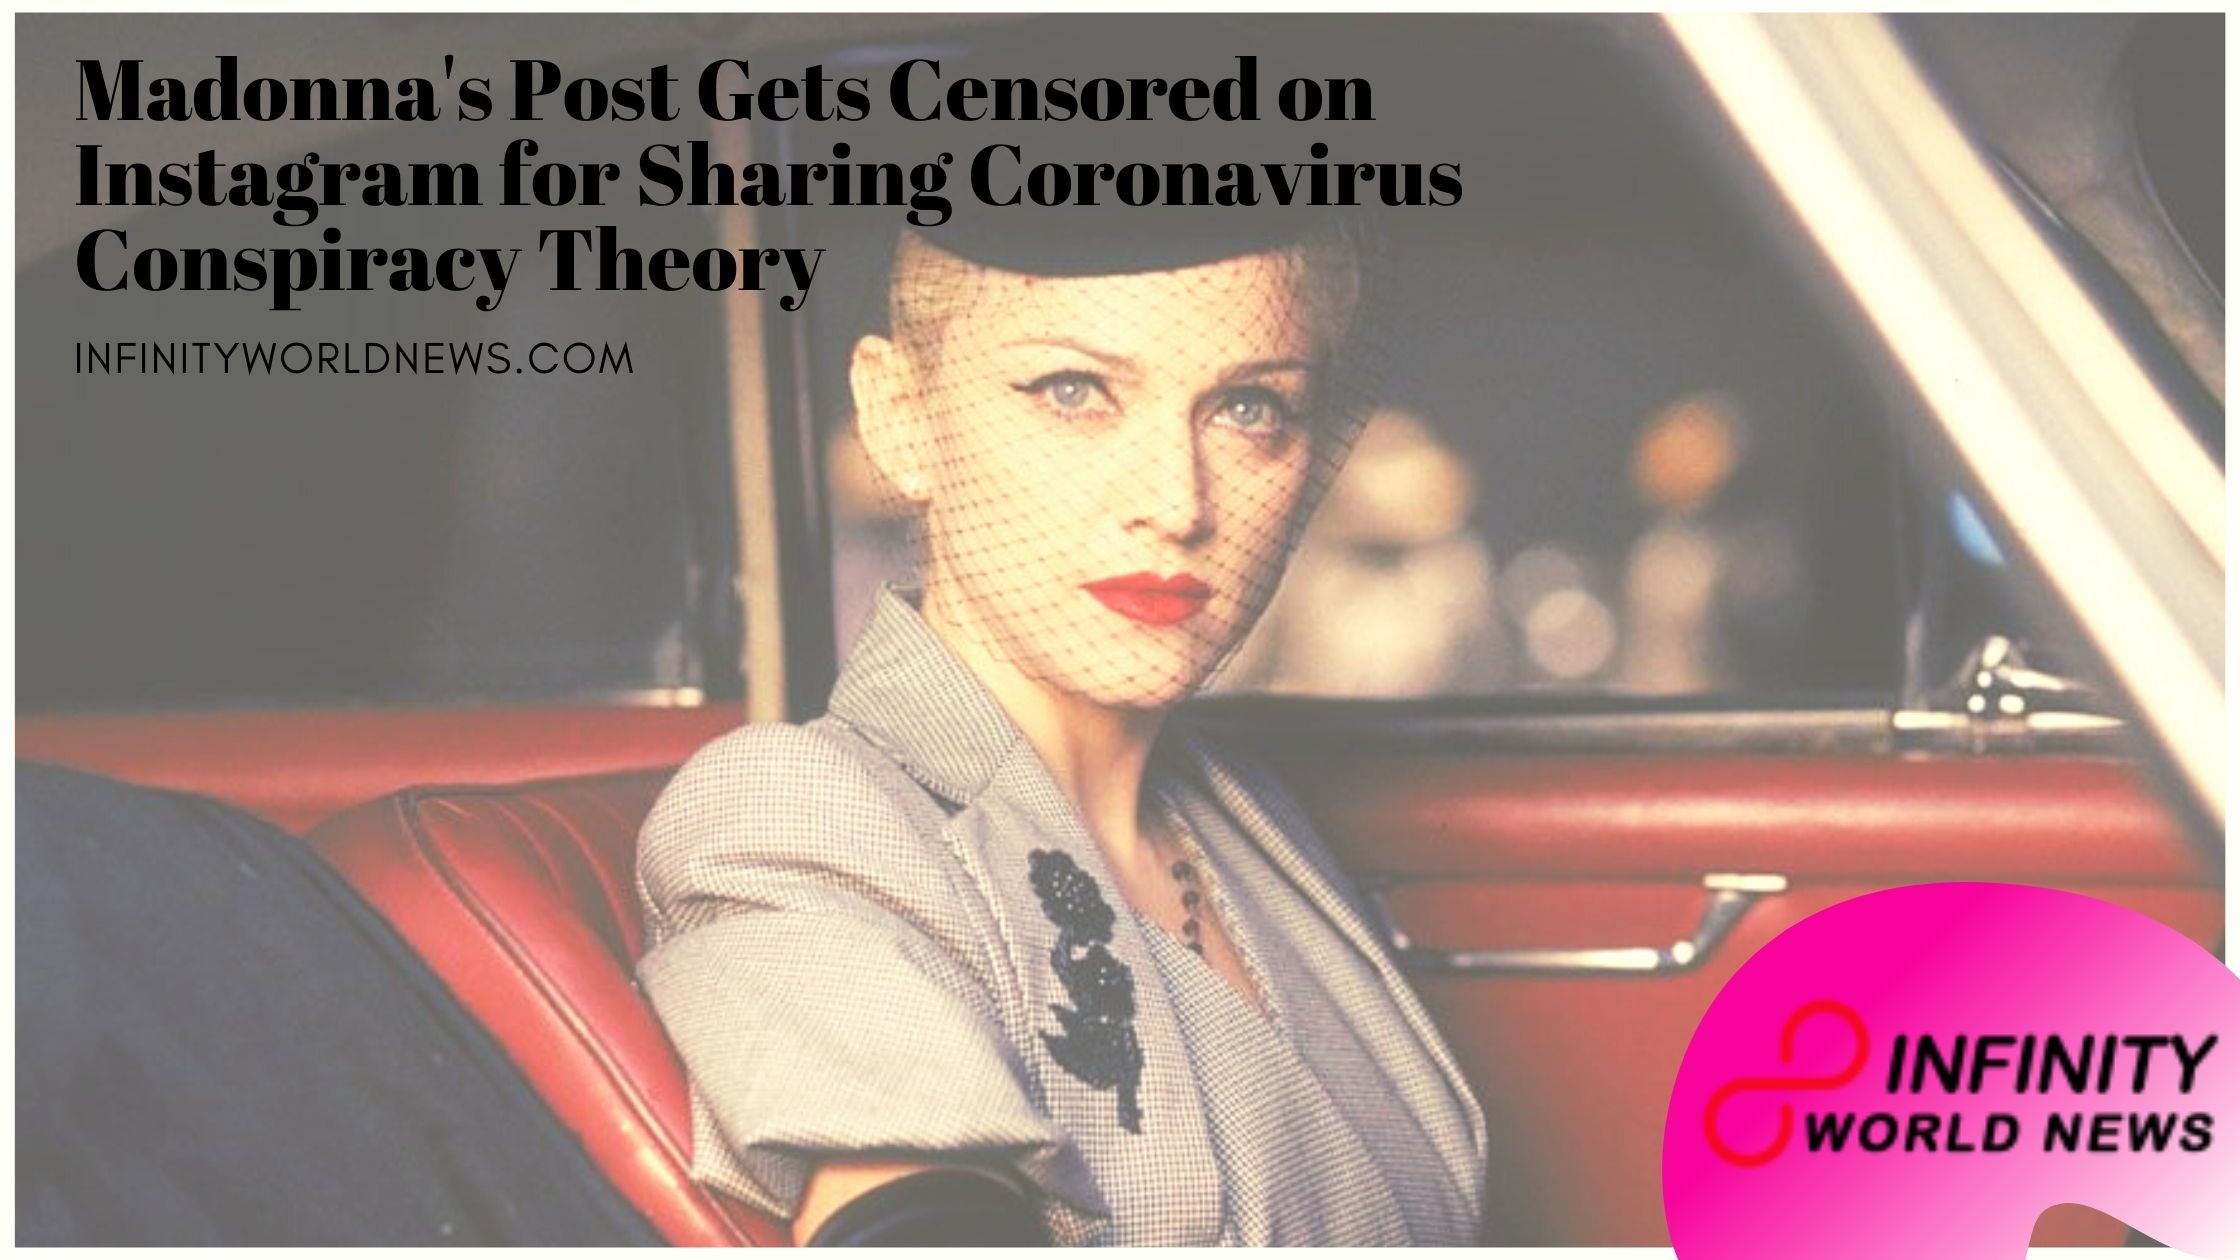 Madonna's Post Gets Censored on Instagram for Sharing Coronavirus Conspiracy Theory